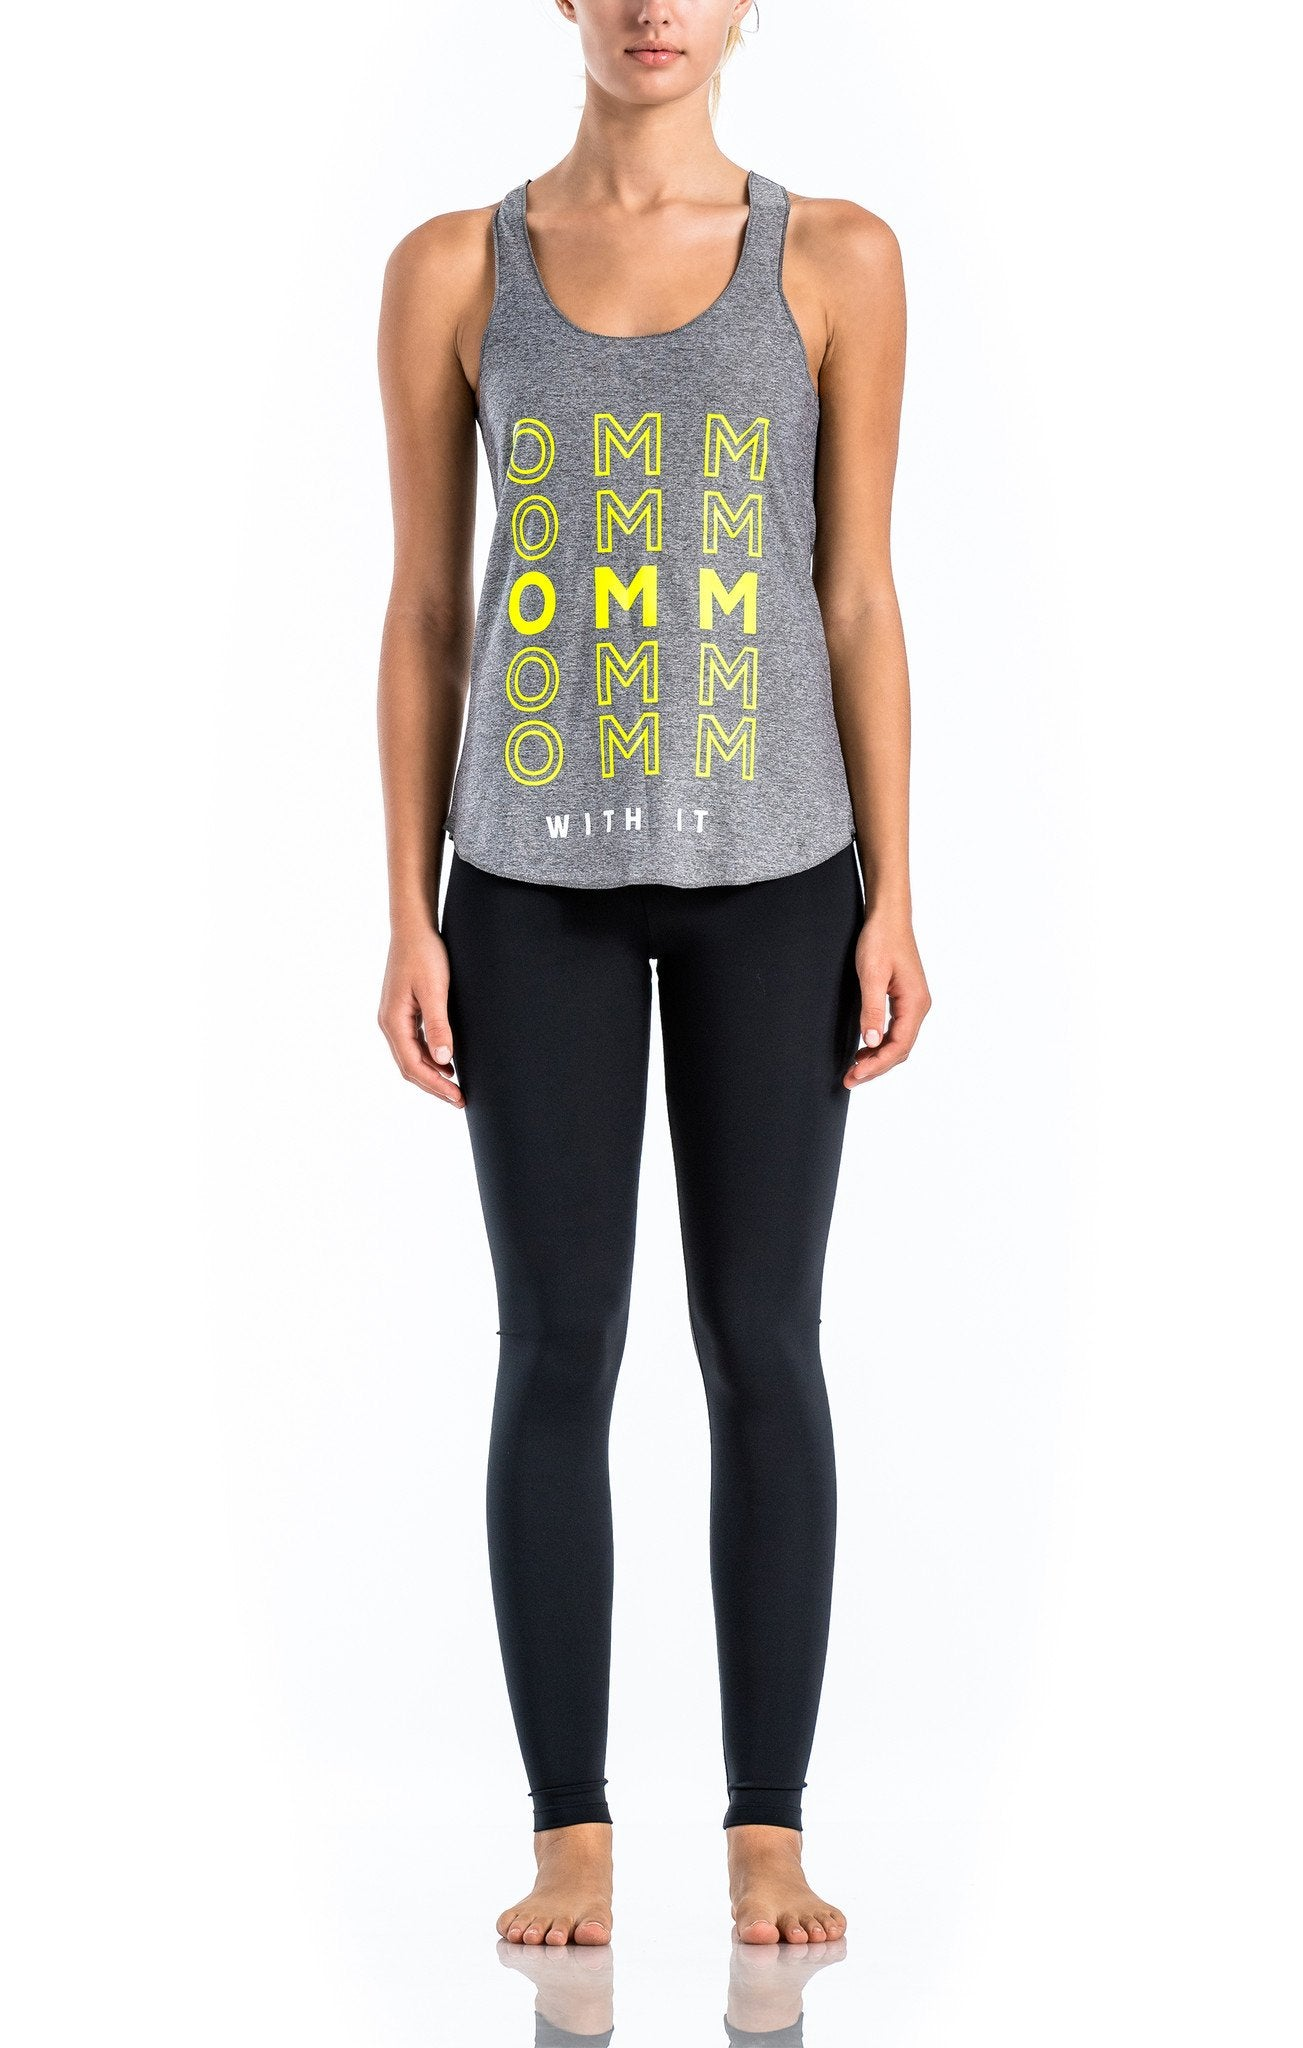 SIENNA Relaxed Graphic Racer Back - Workout Tops